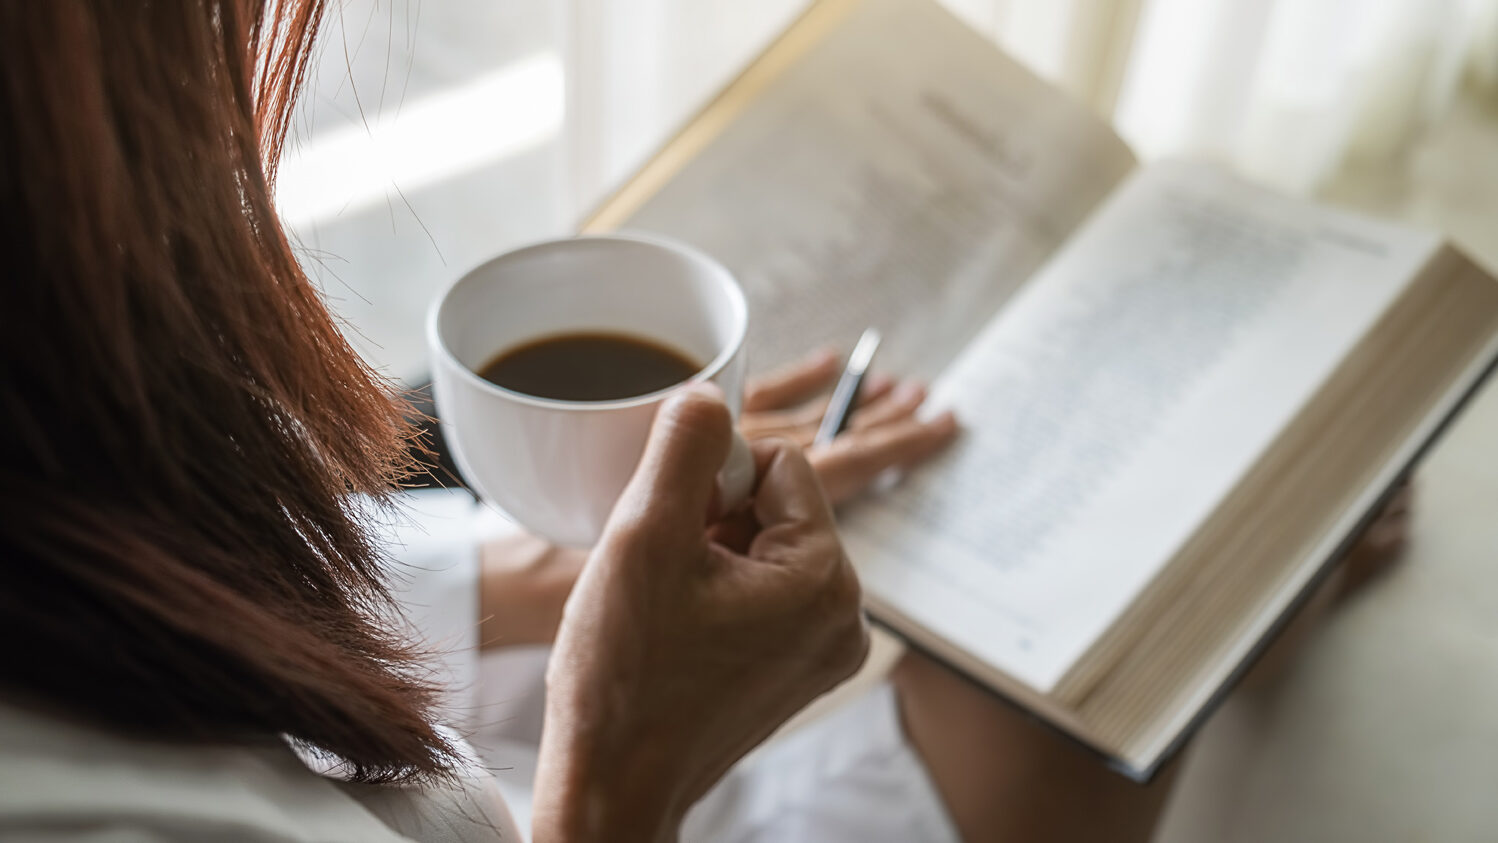 Asian woman holding cup of coffee and reading a book beside the window after get up in morning. Morning lifestyle concept.